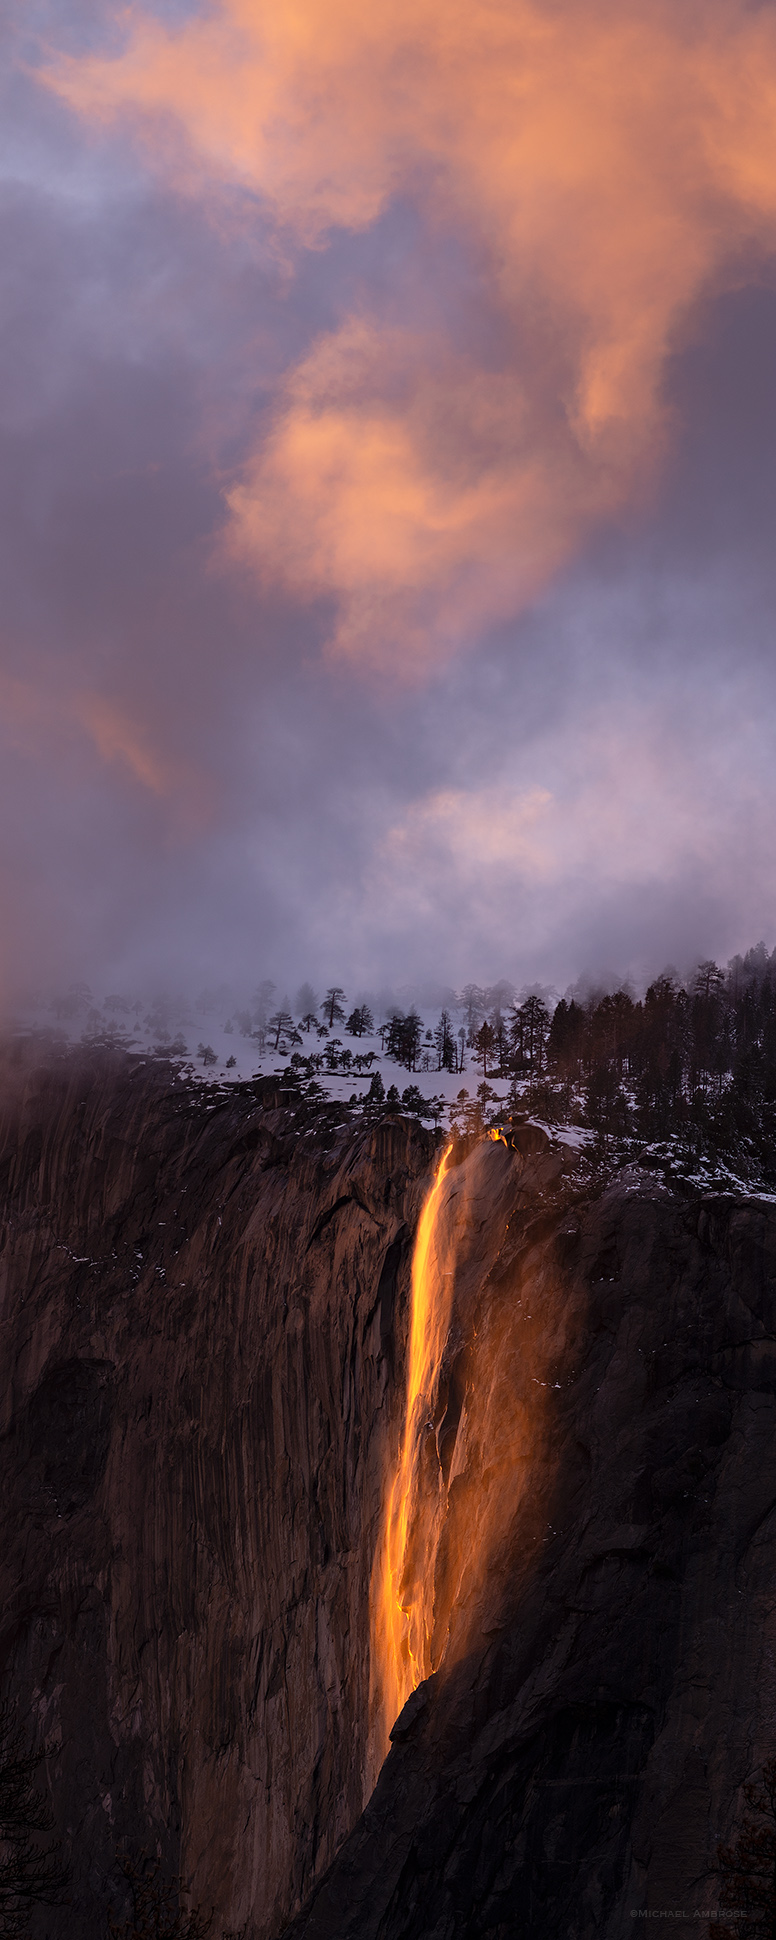 Every year I look forward to photographing the phenomenon of last light on Horsetail Fall. There is always an element of luck...